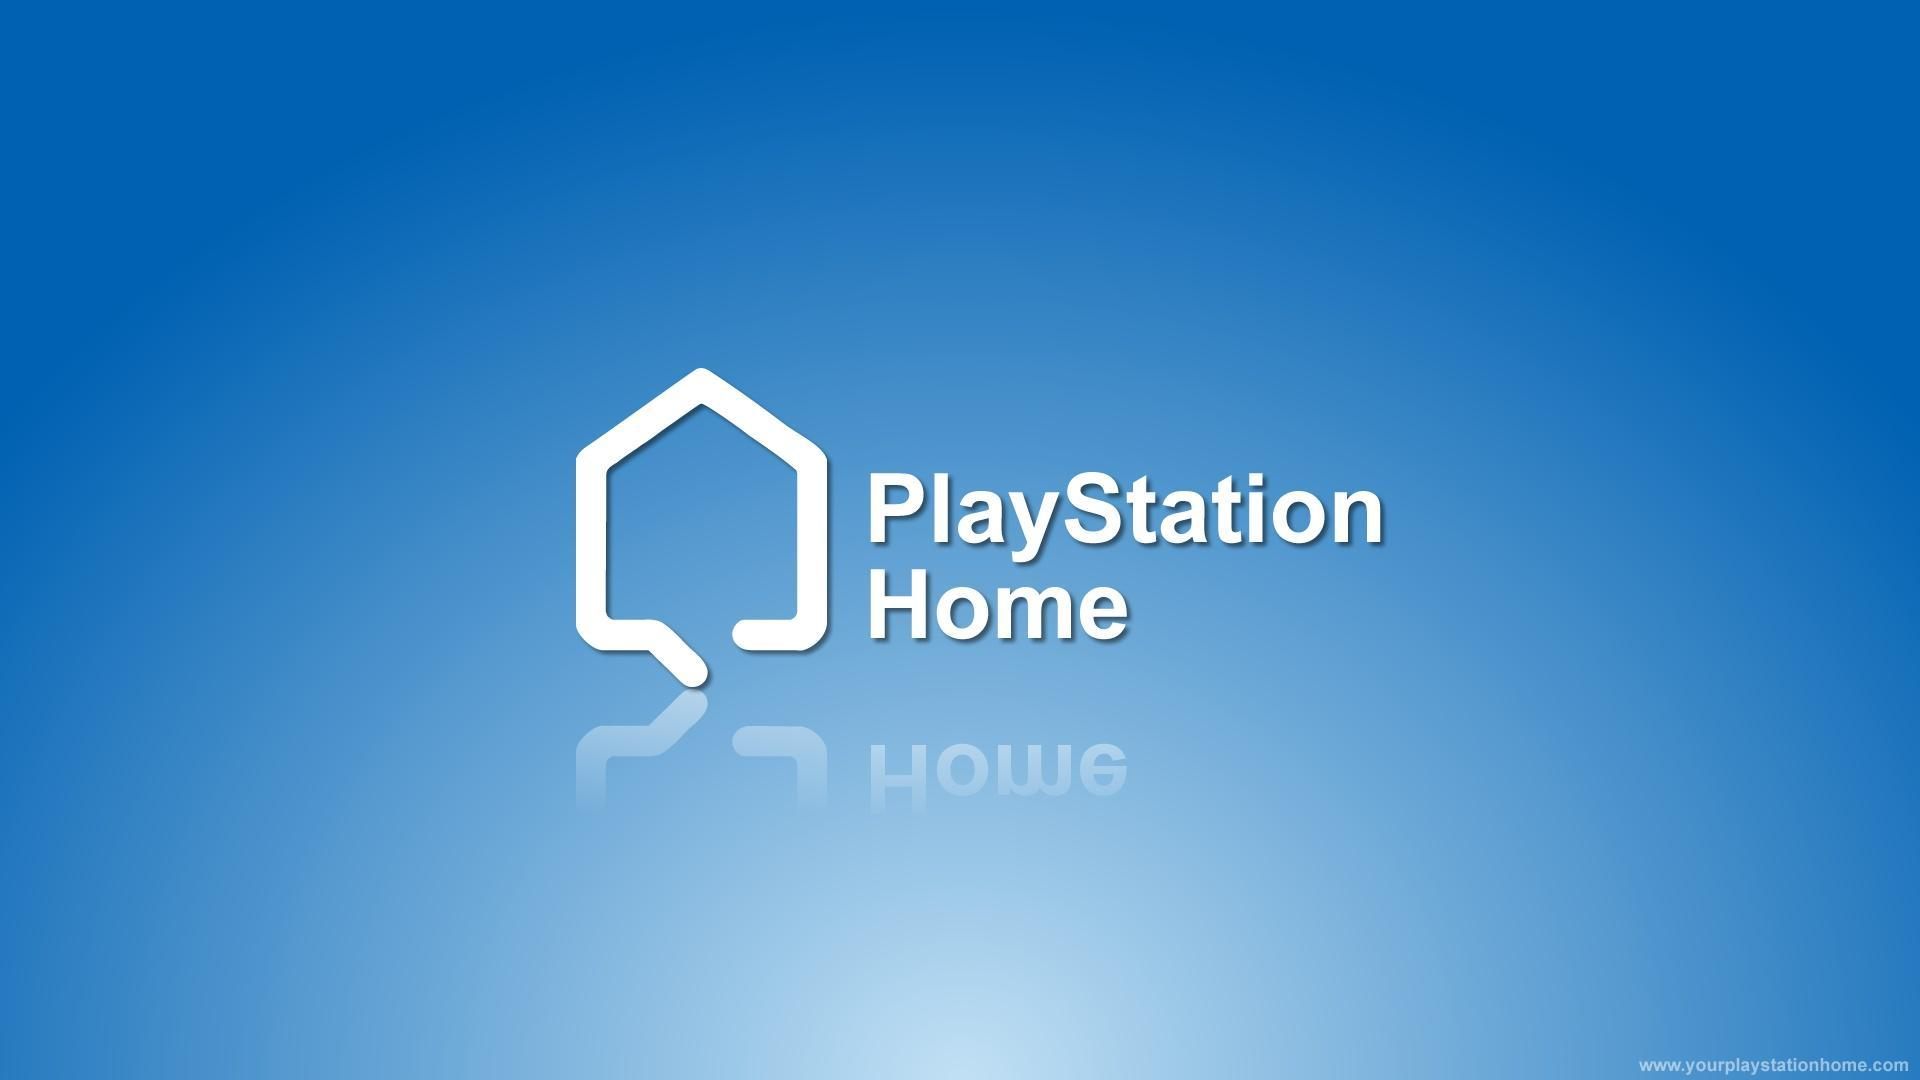 Thoughts on Playstation Home